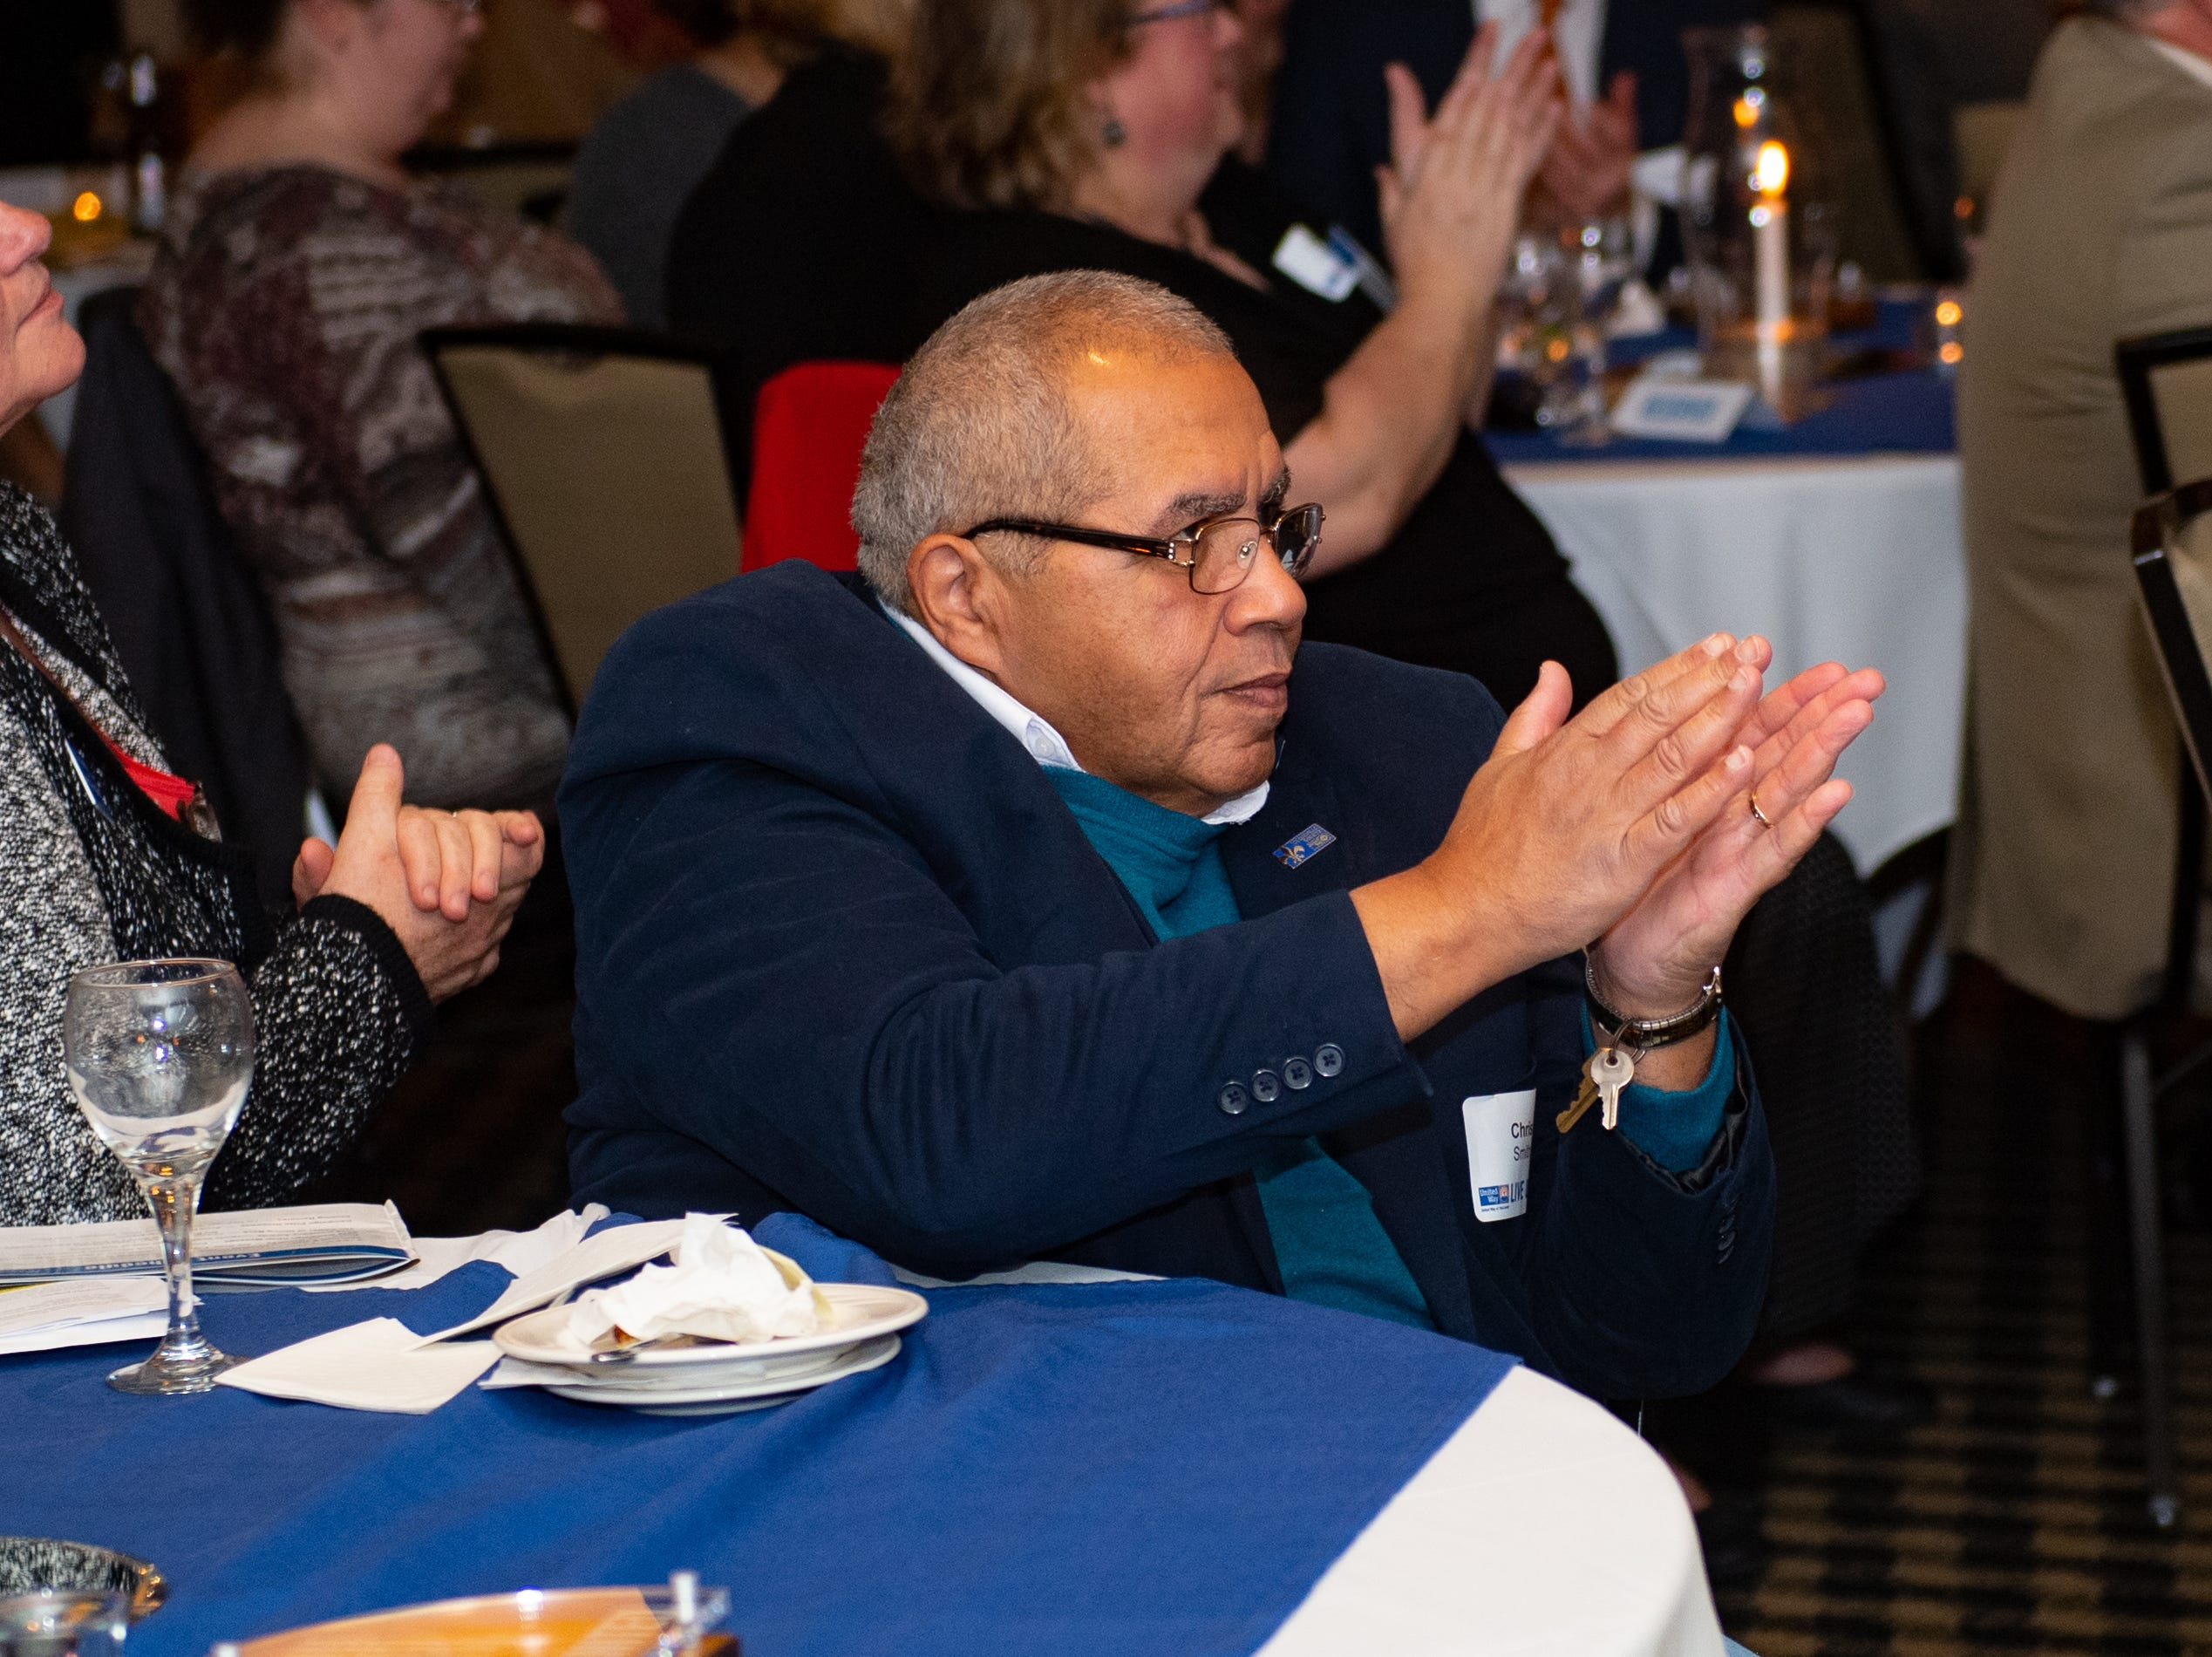 After every winner is announced, the crowd erupts into a loud and an endearing applause during the 2018 United Way Campaign Celebration, February 7, 2019.